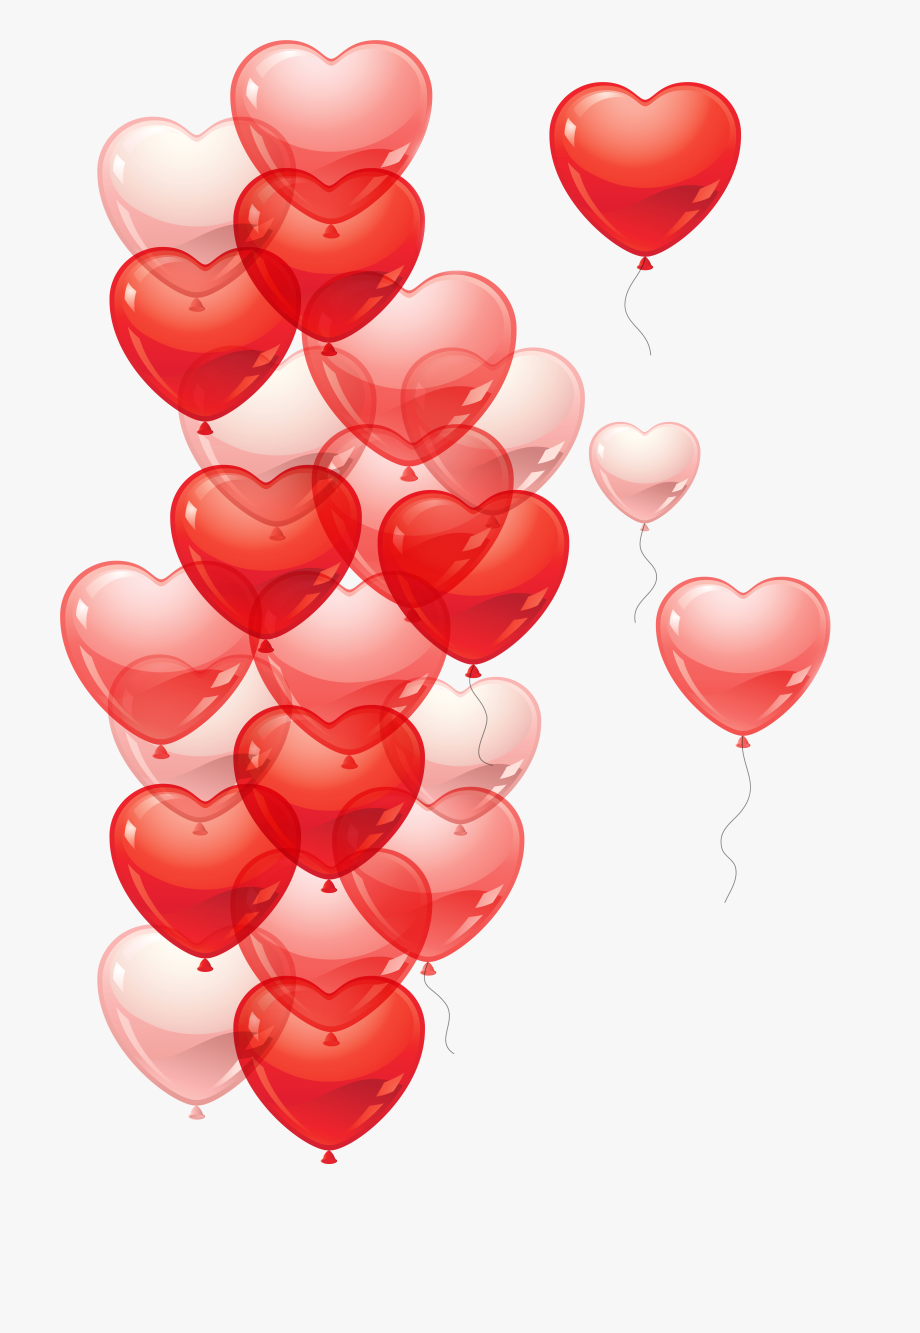 Png Freeuse Stock Heart Bubbles Clipart.